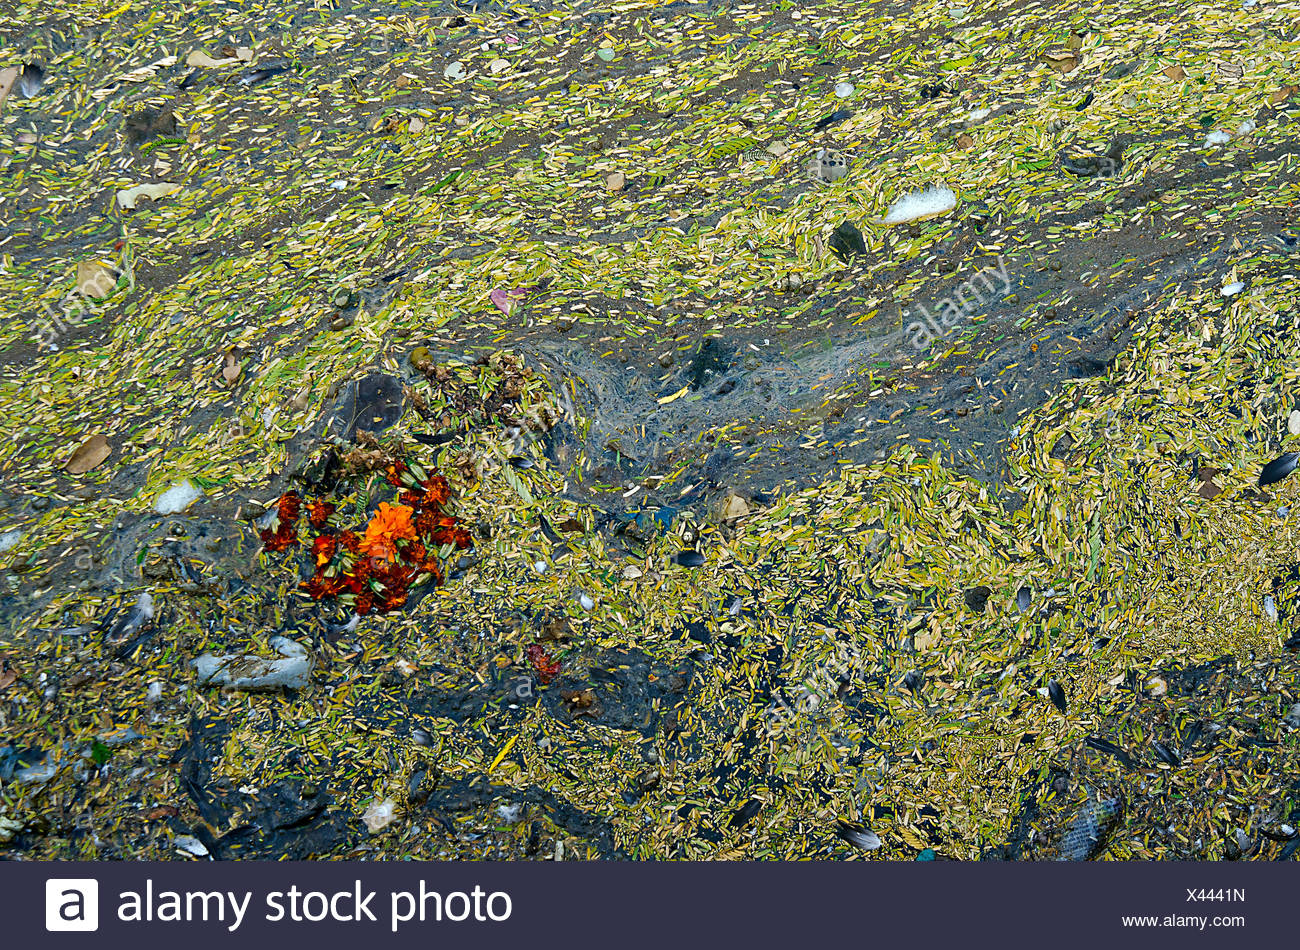 Flowers Floating in Dirty Water - Stock Image